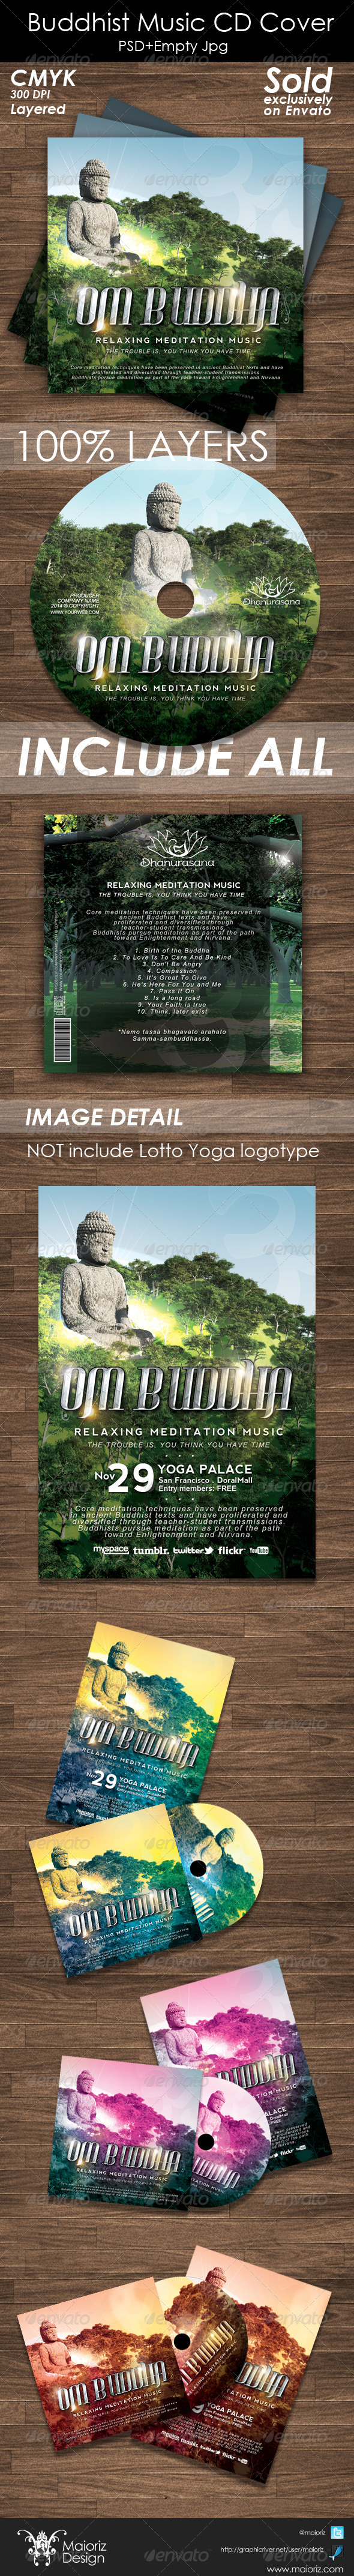 GraphicRiver Buddhist Music Cd Cover 5597535